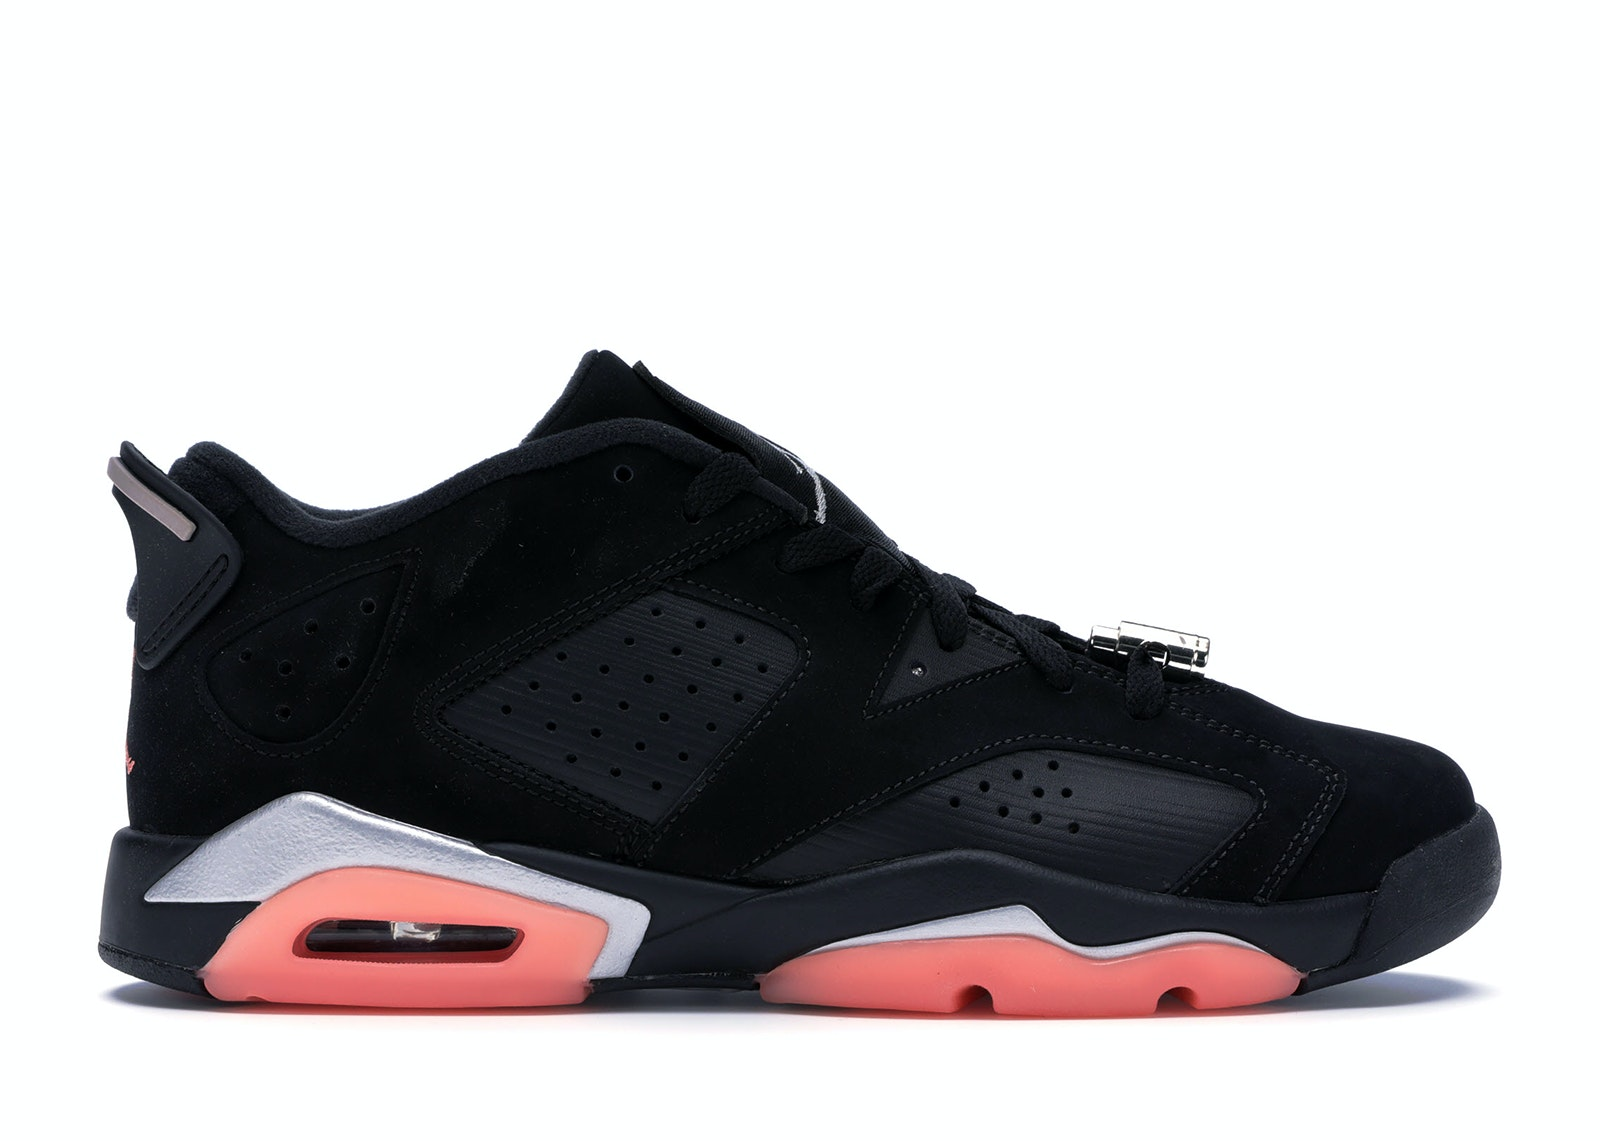 Jordan 6 Retro Low Sunblush (GS)